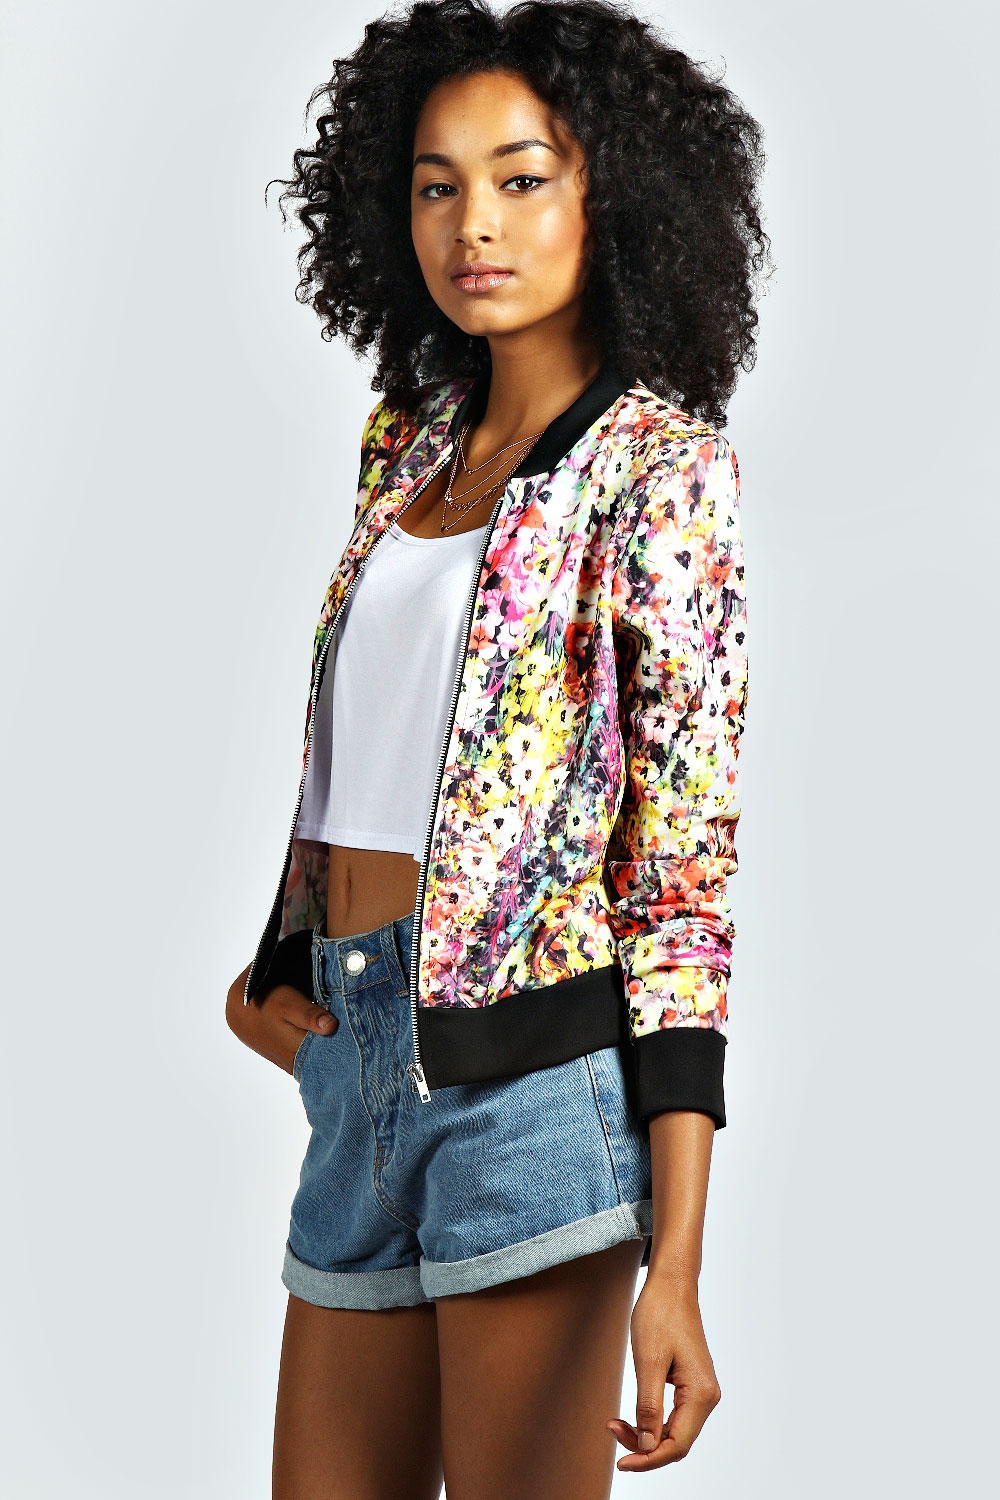 Boohoo Womens Ladies Elise Floral Print Bomber Jacket In Multi | eBay